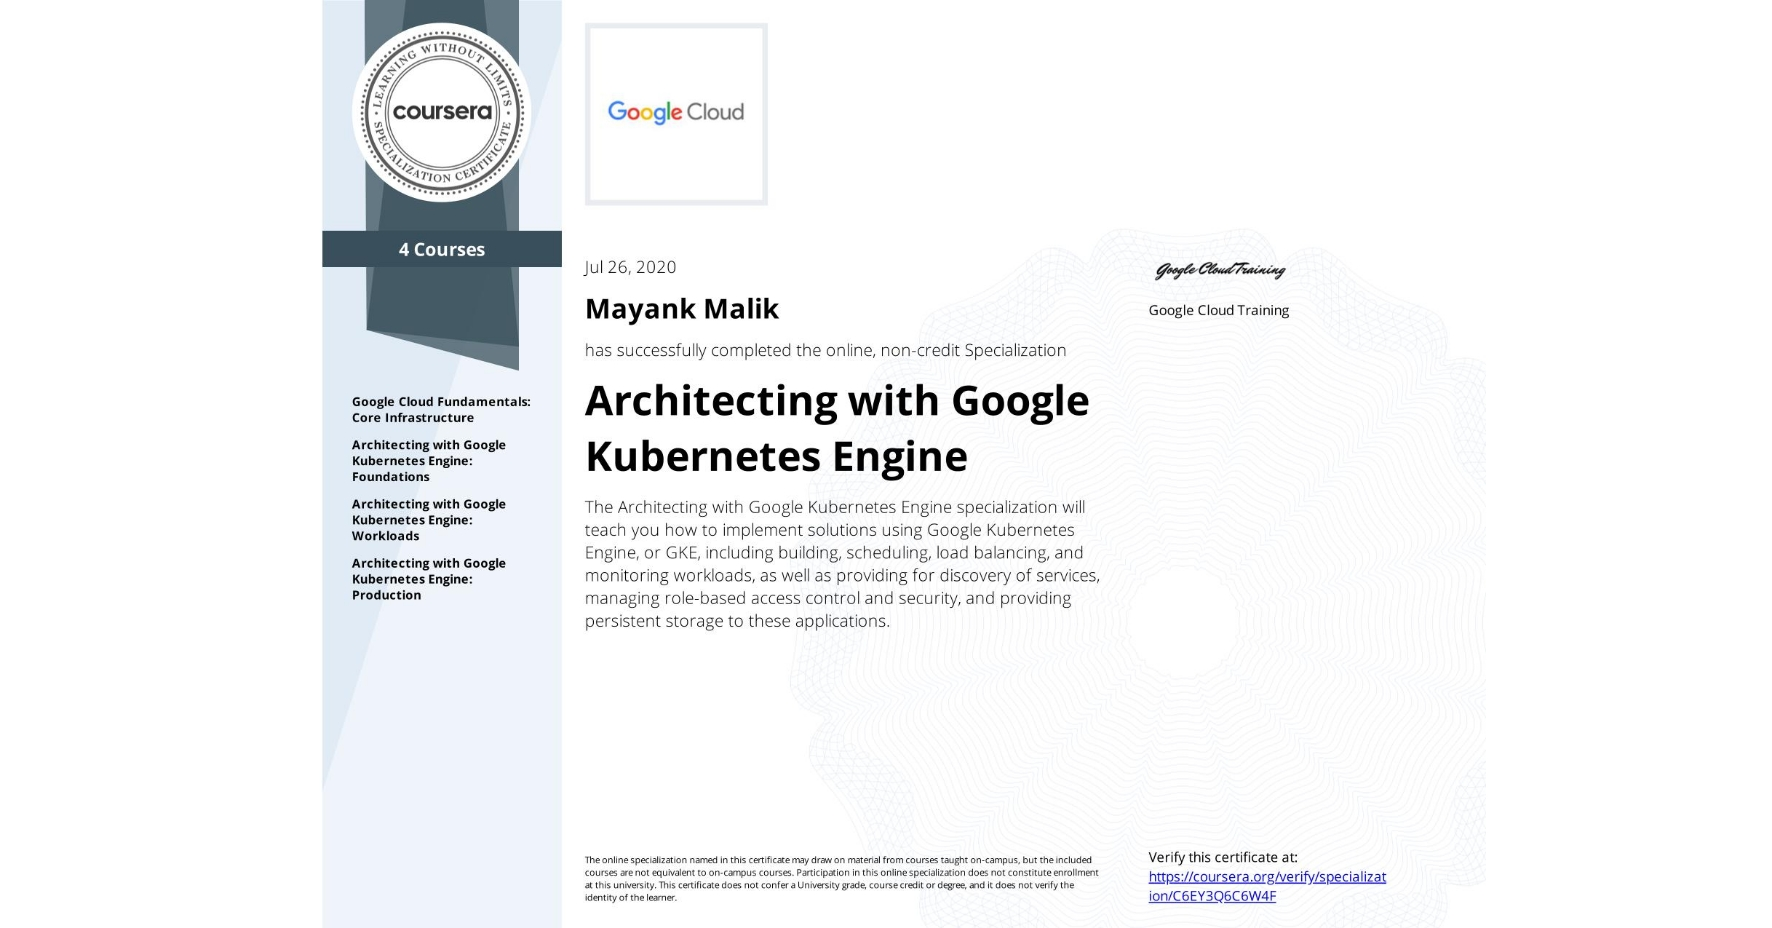 View certificate for Mayank Malik, Architecting with Google Kubernetes Engine, offered through Coursera. The Architecting with Google Kubernetes Engine specialization will teach you how to implement solutions using Google Kubernetes Engine, or GKE, including building, scheduling, load balancing, and monitoring workloads, as well as providing for discovery of services, managing role-based access control and security, and providing persistent storage to these applications.